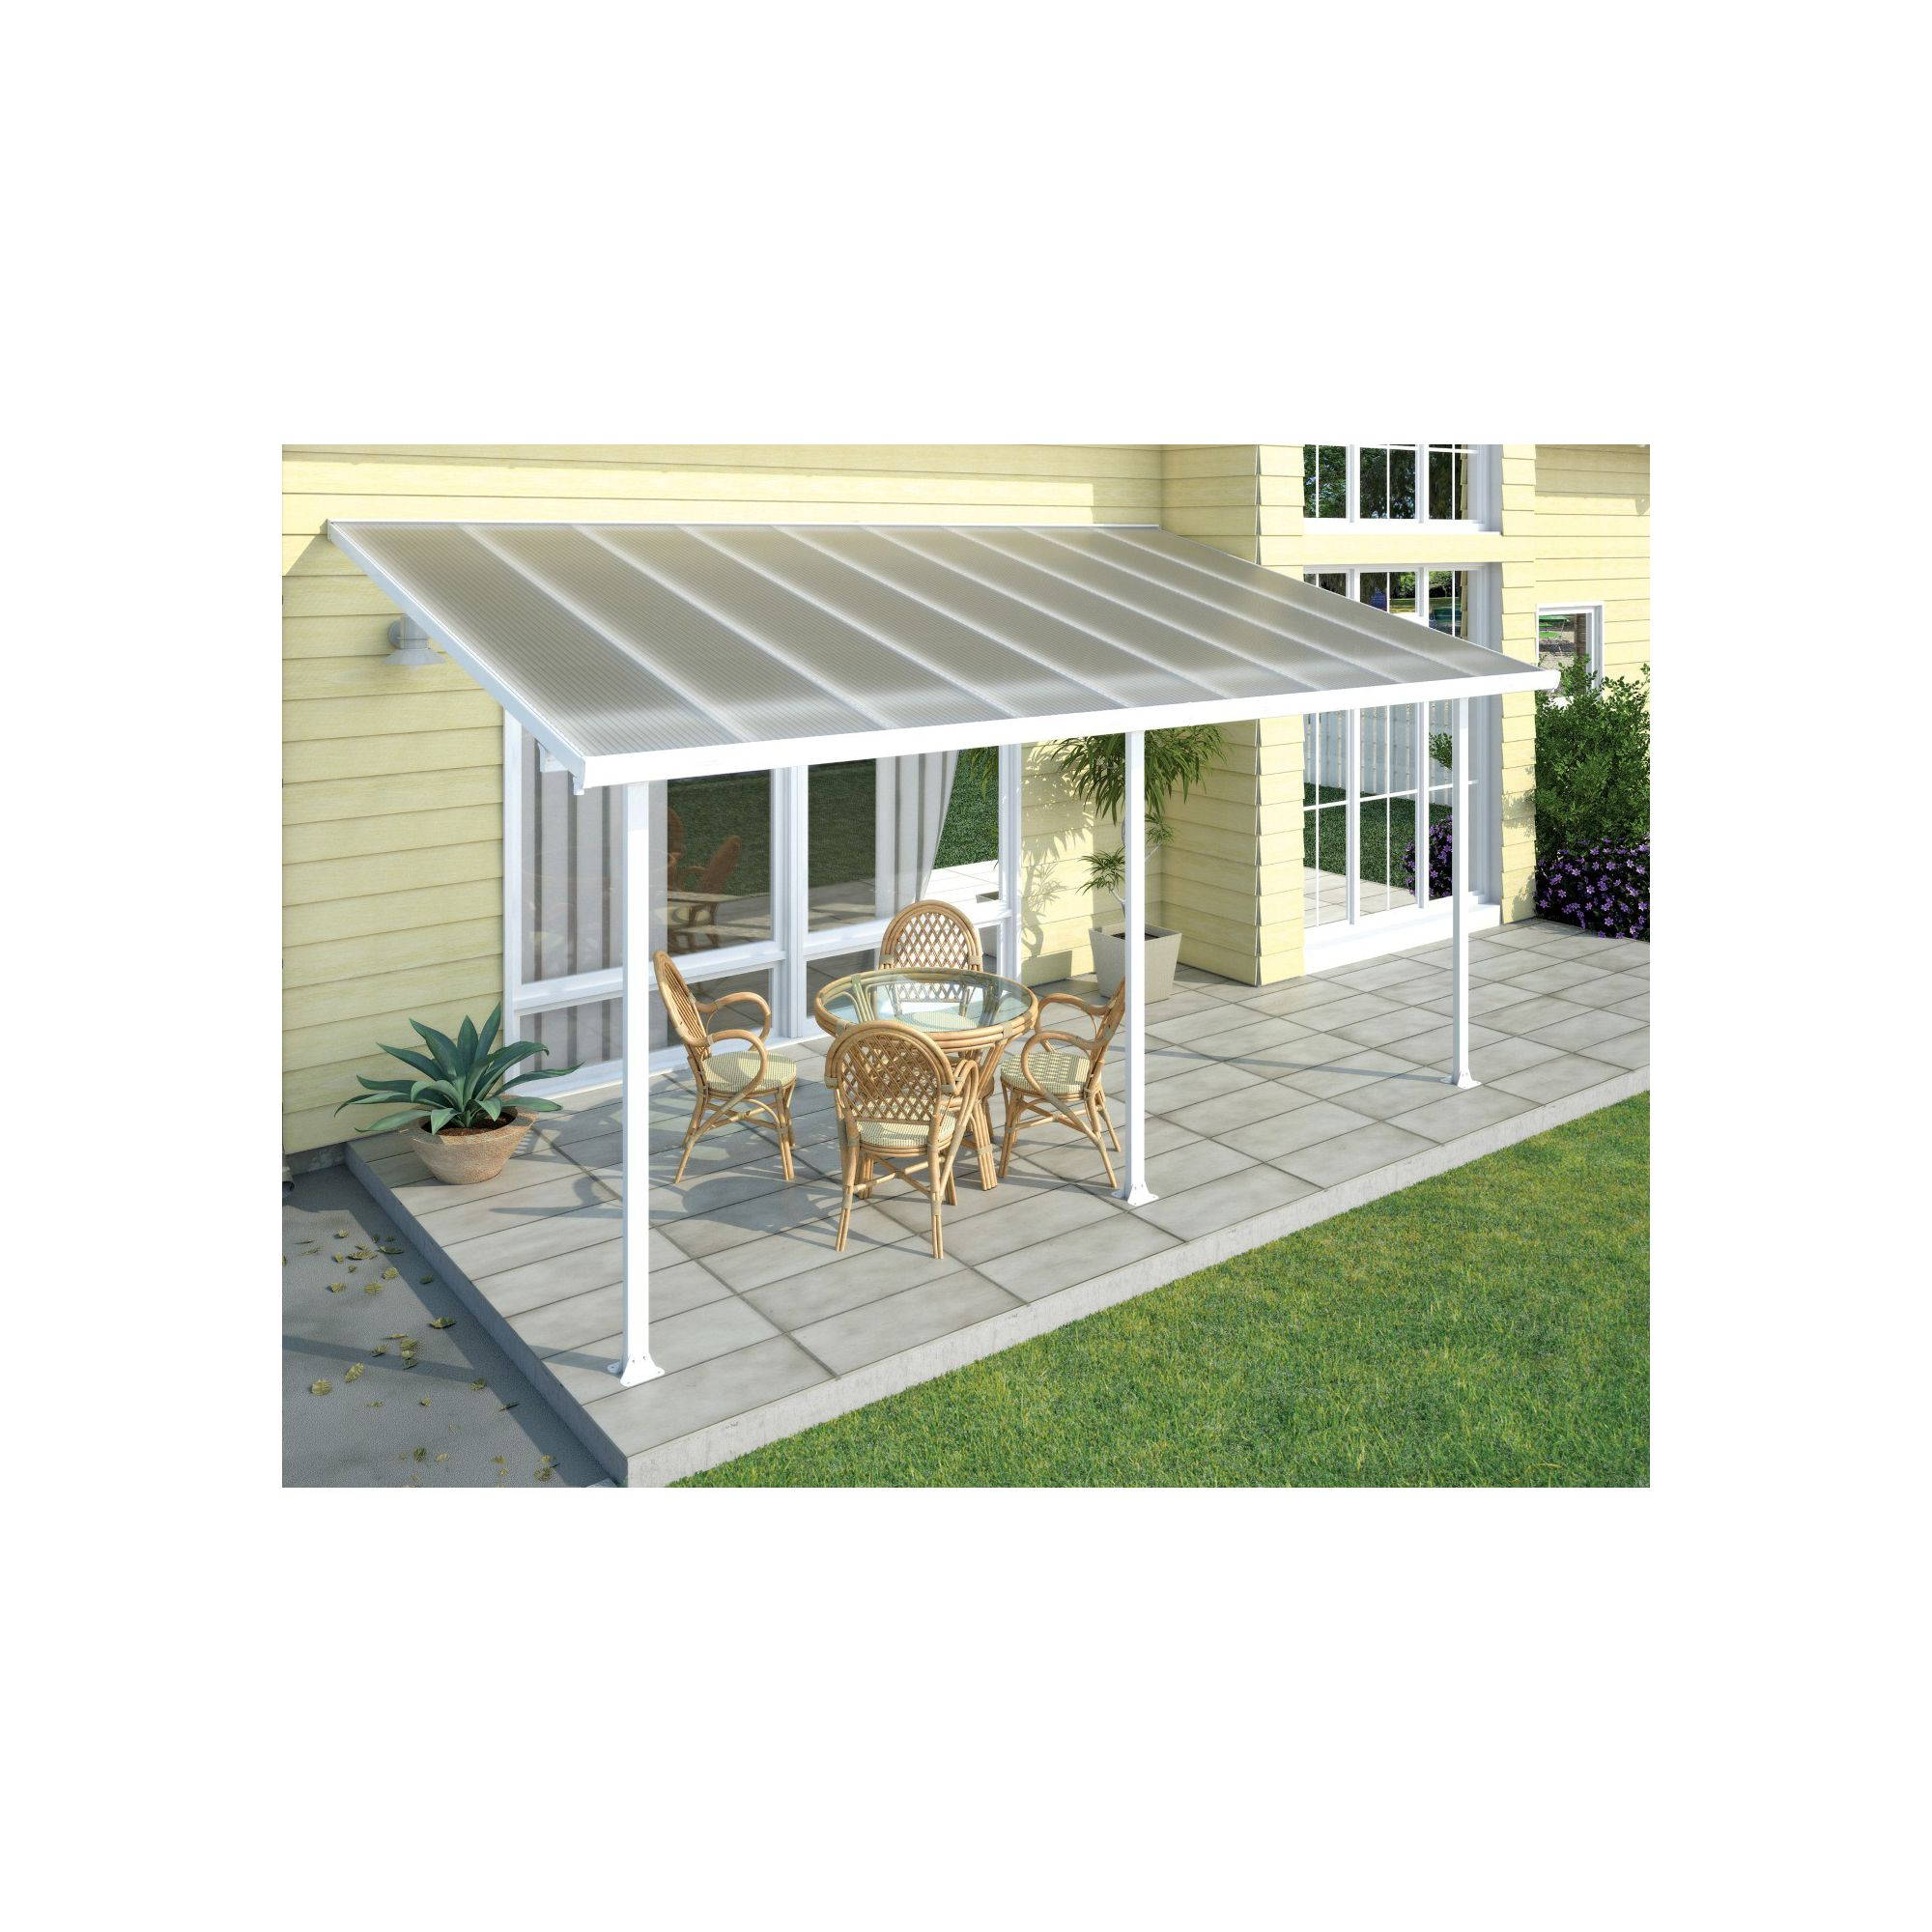 FERIA LEAN TO CARPORT AND PATIO COVER 4X12.12 WHITE at Tesco Direct